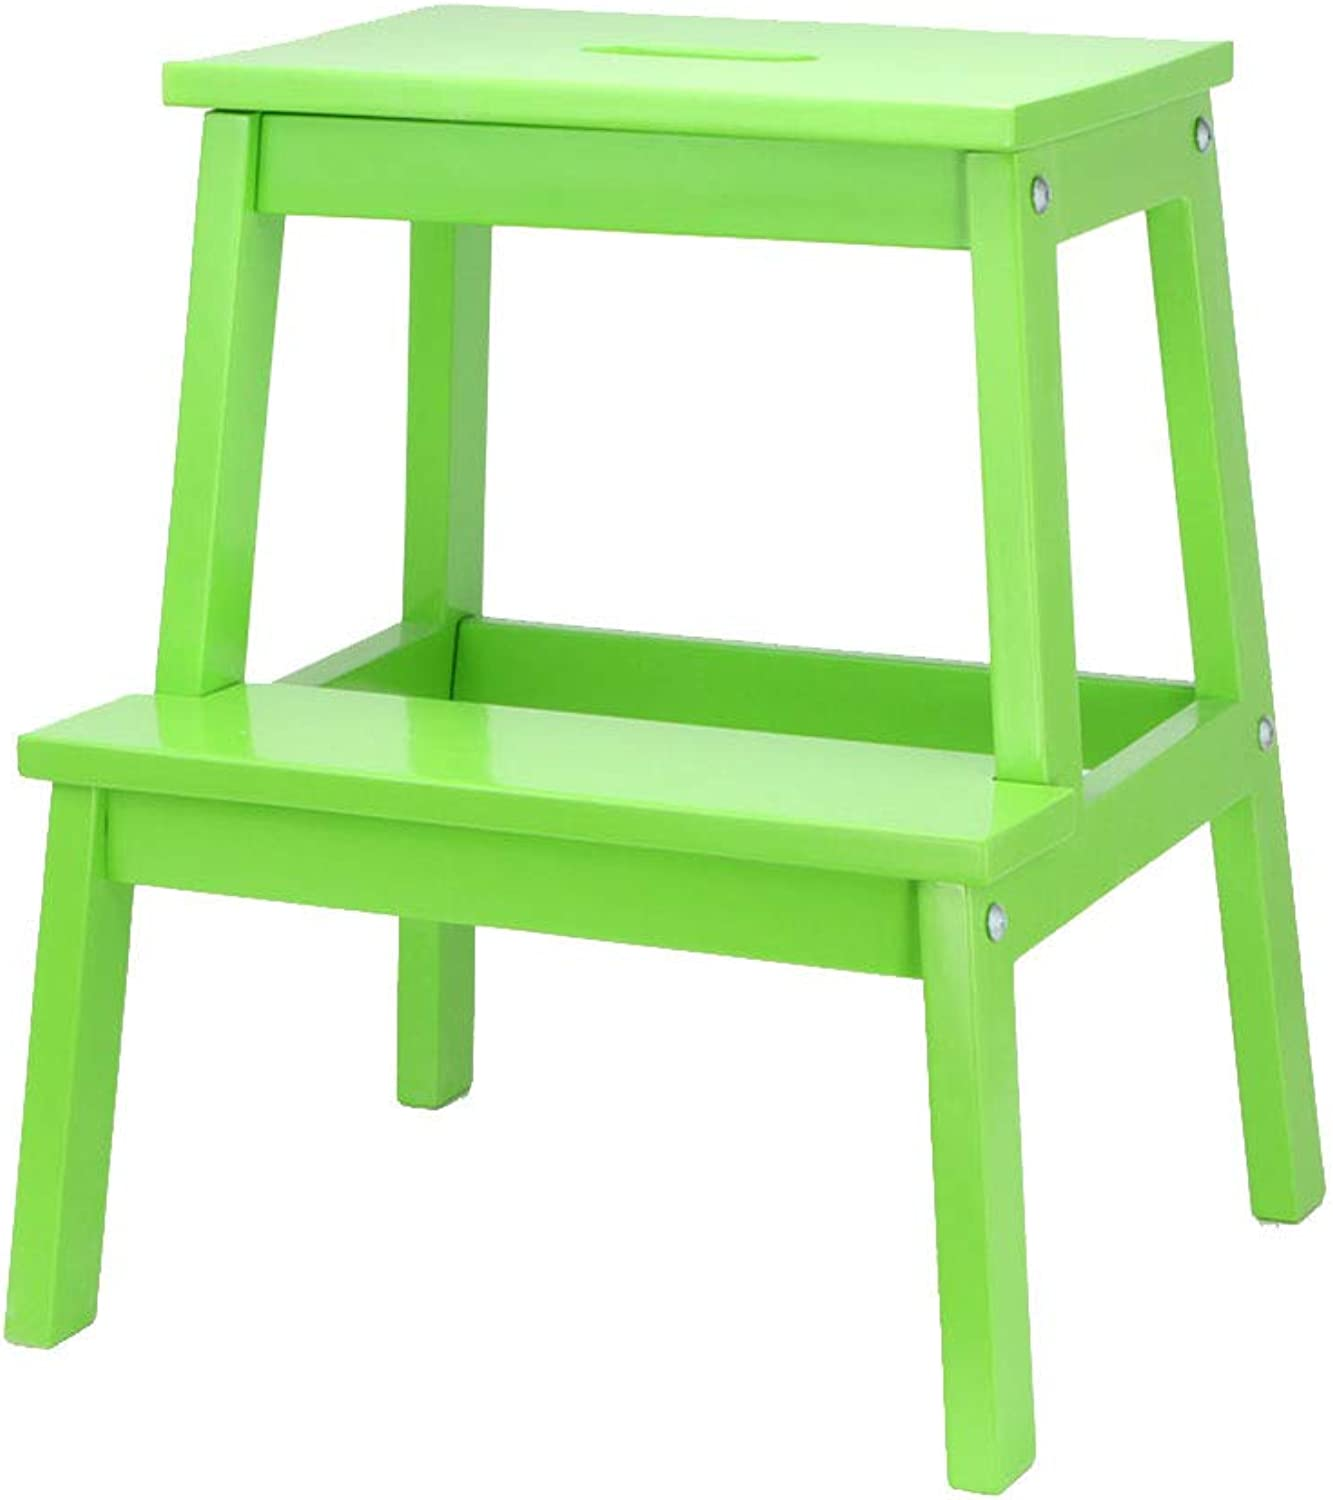 Ladder Step Stool, Solid Wood 2 Steps Stool Ladder Dual Purpose Hollow Portable Handle Household Ascend Change shoes 10 colors (color   Green)